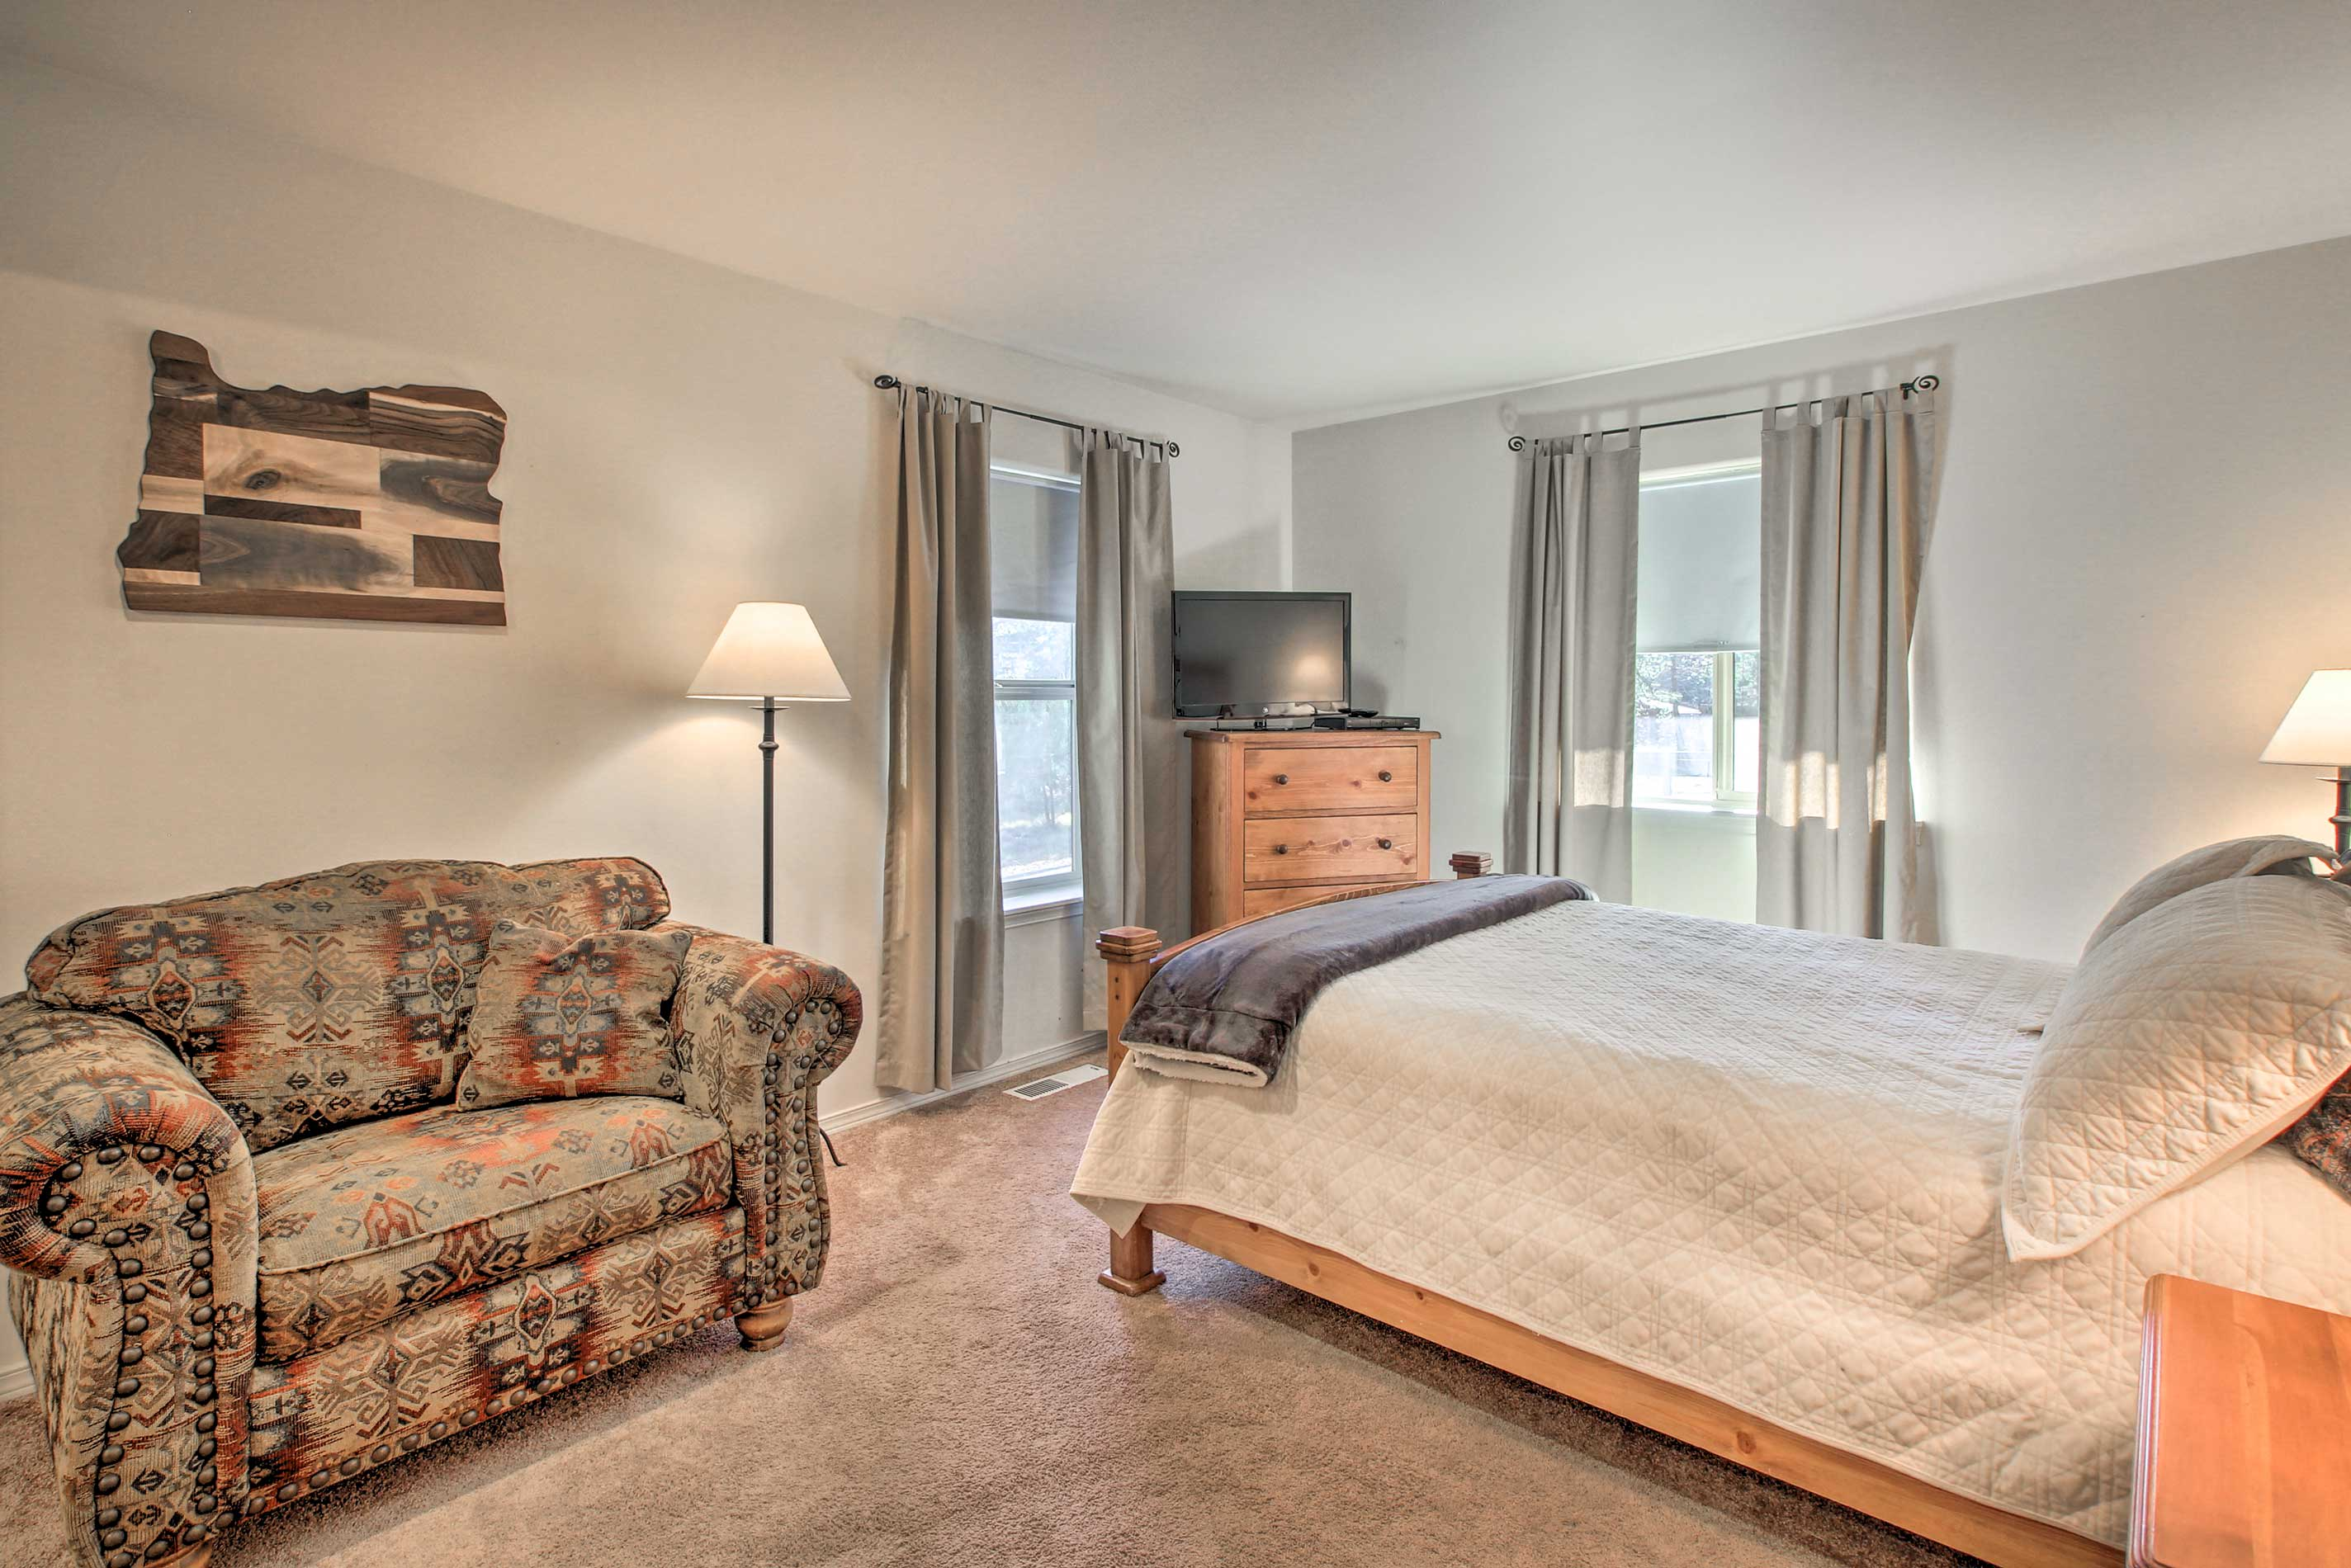 The master bedroom features a queen-sized bed and a flat-screen cable TV.